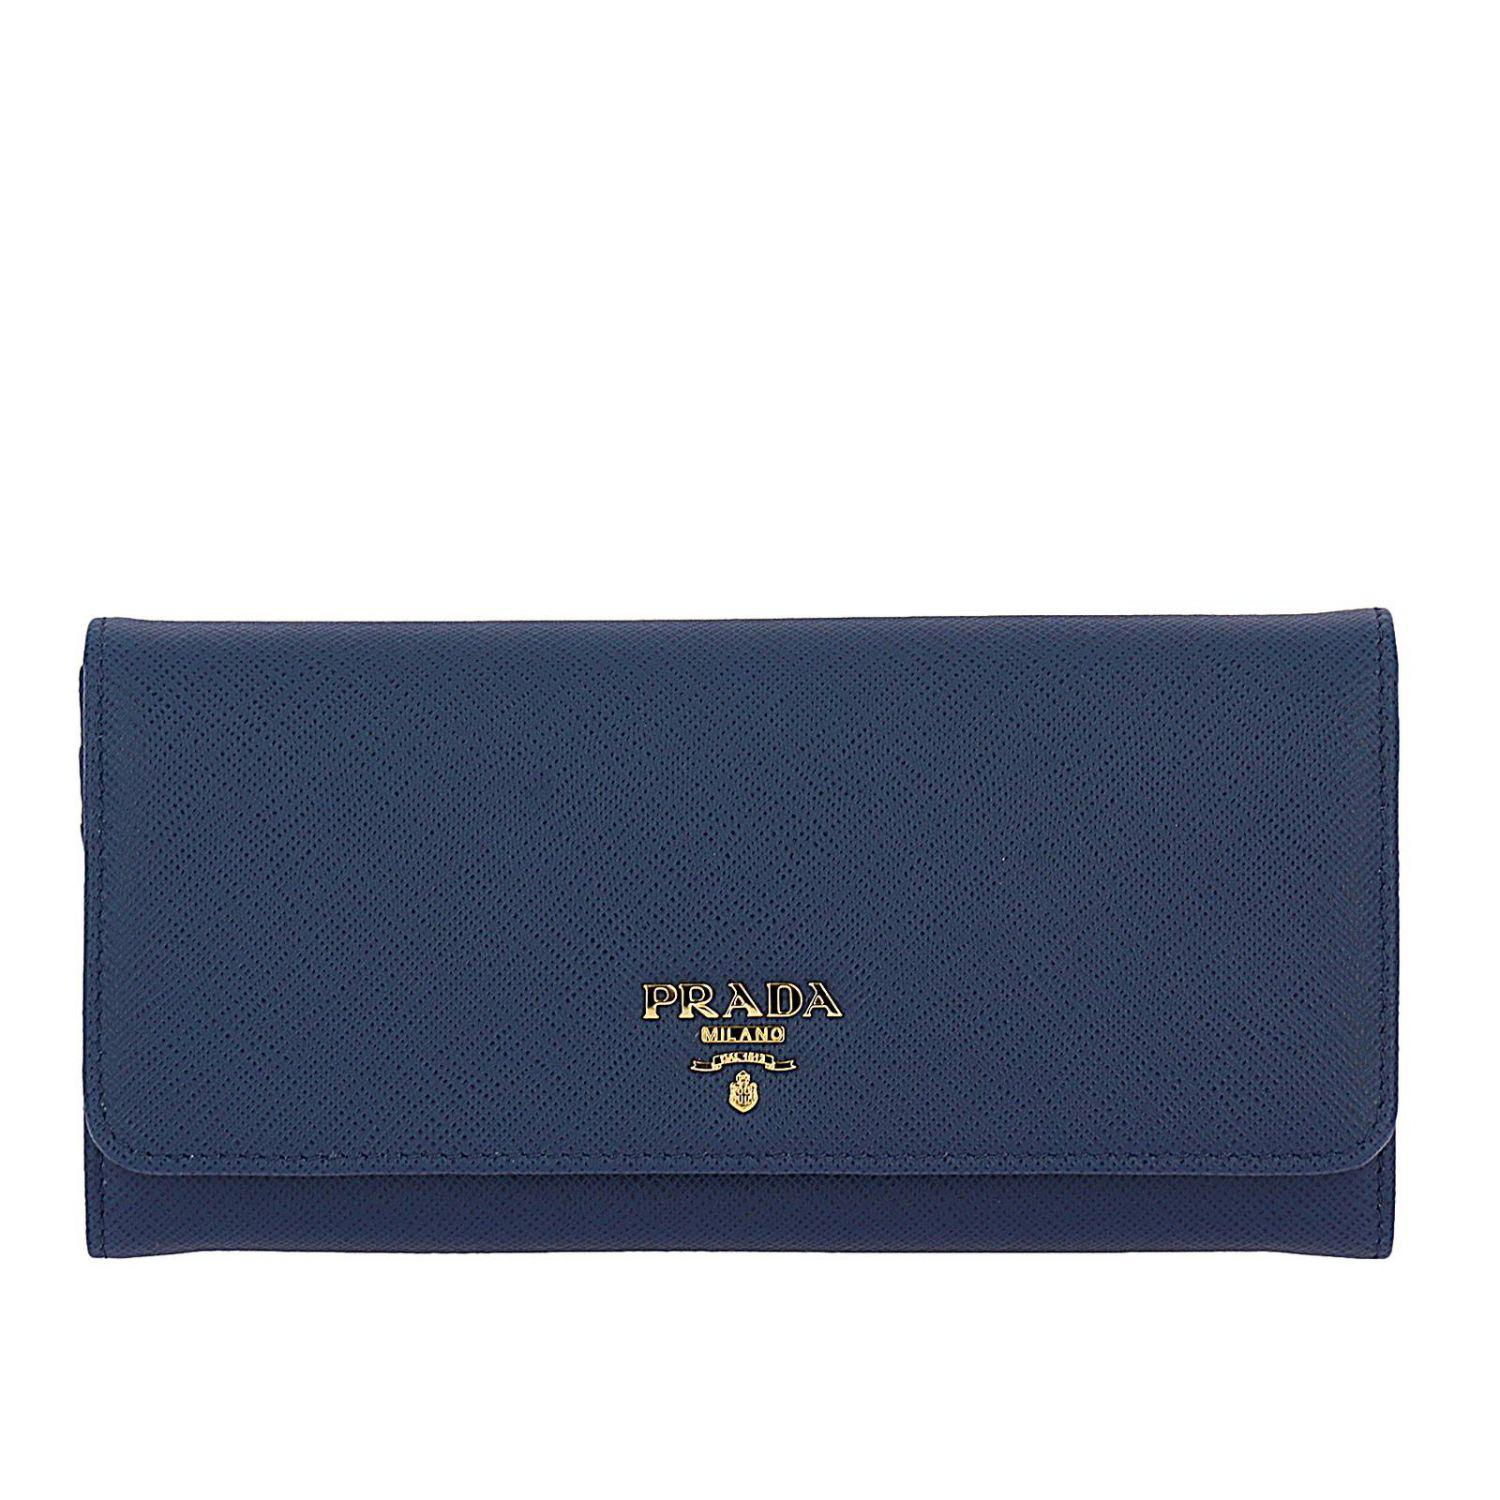 de99b72f5932 Prada Wallet Women in Blue - Lyst